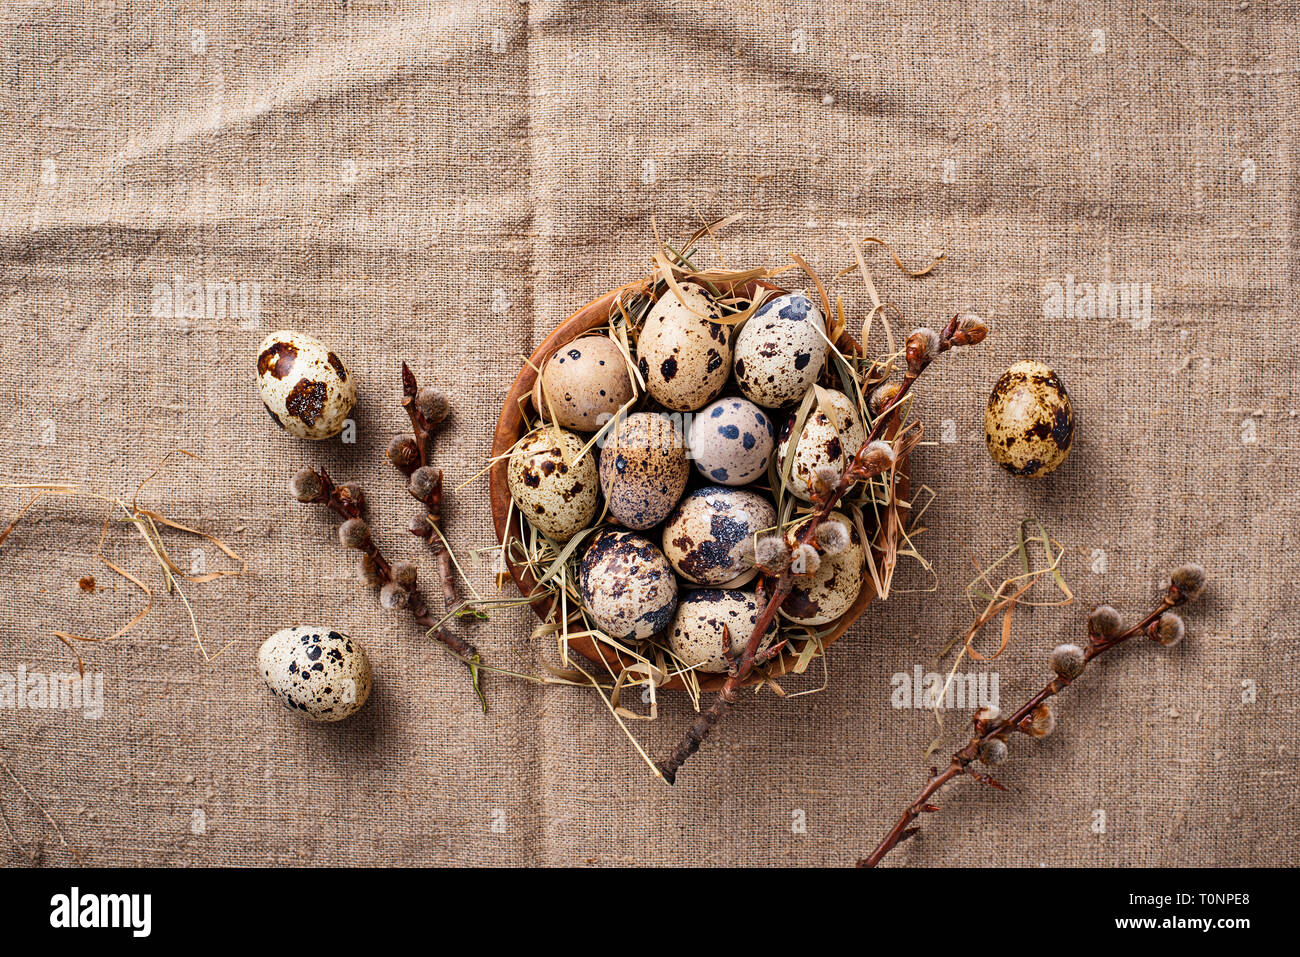 Quail eggs on linen background - Stock Image